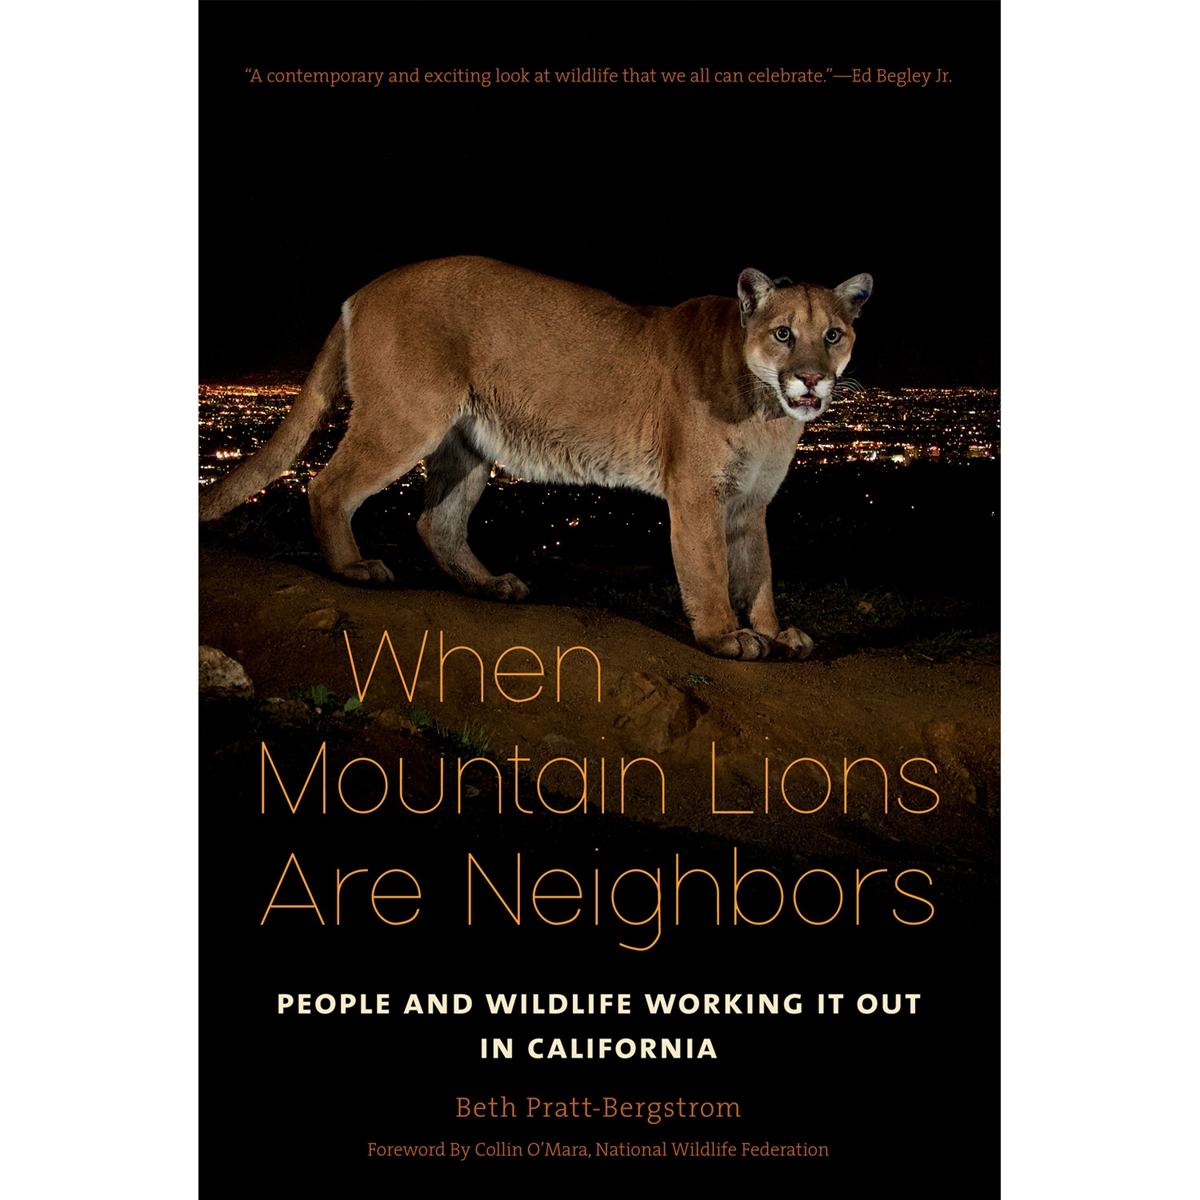 When Mountain Lions Are Neighbors